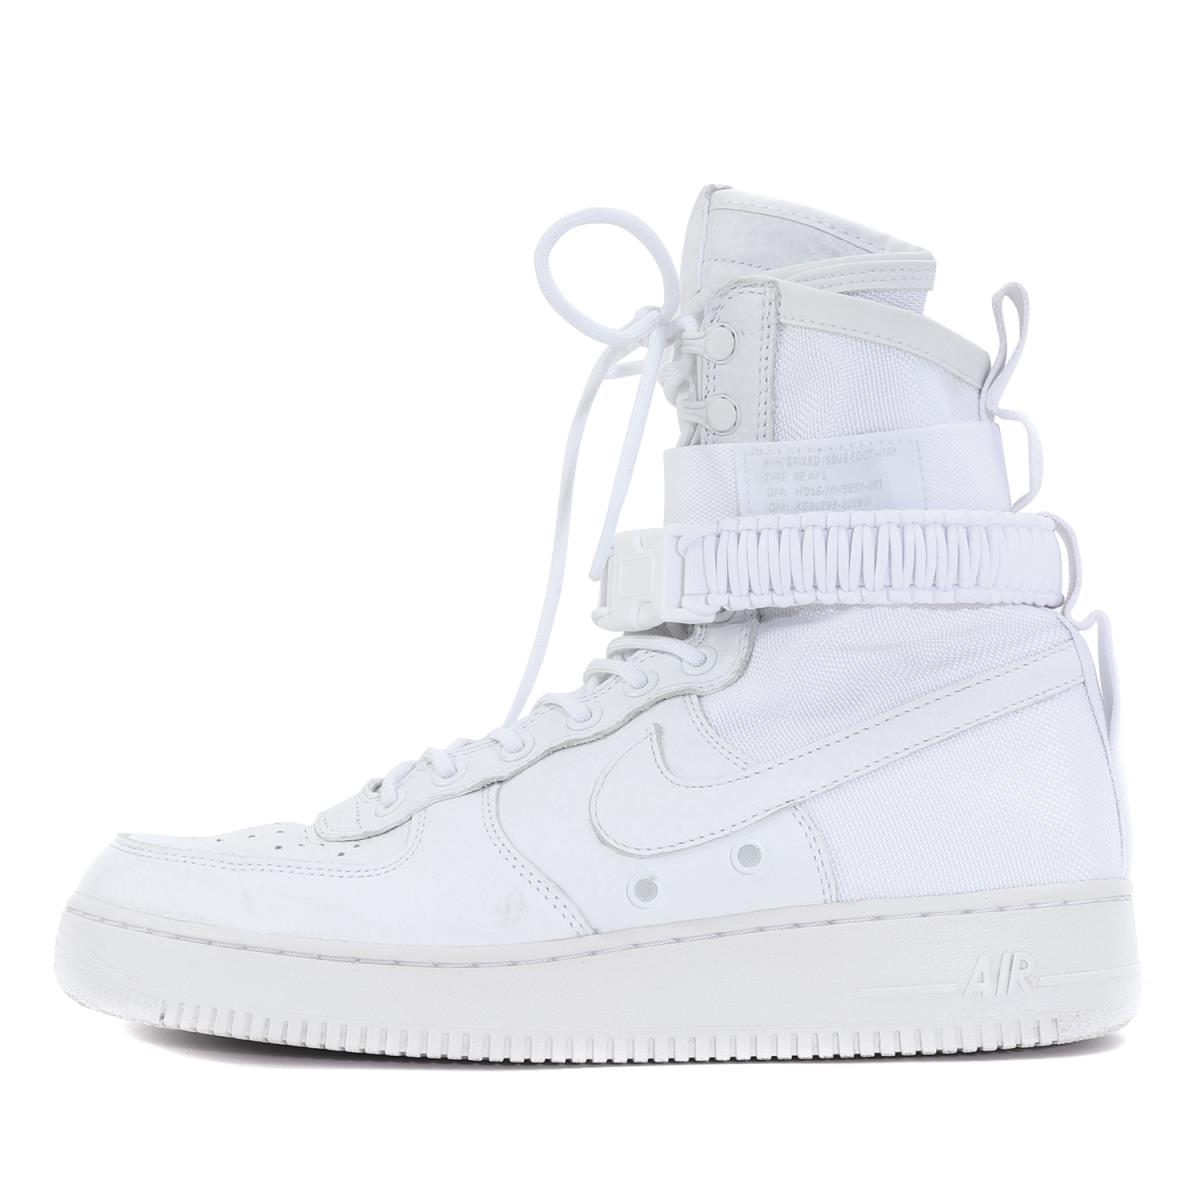 2f97abe57690 BEEGLE by Boo-Bee  NIKE (Nike) SPECIAL FIELD AIR FORCE 1 QS (903